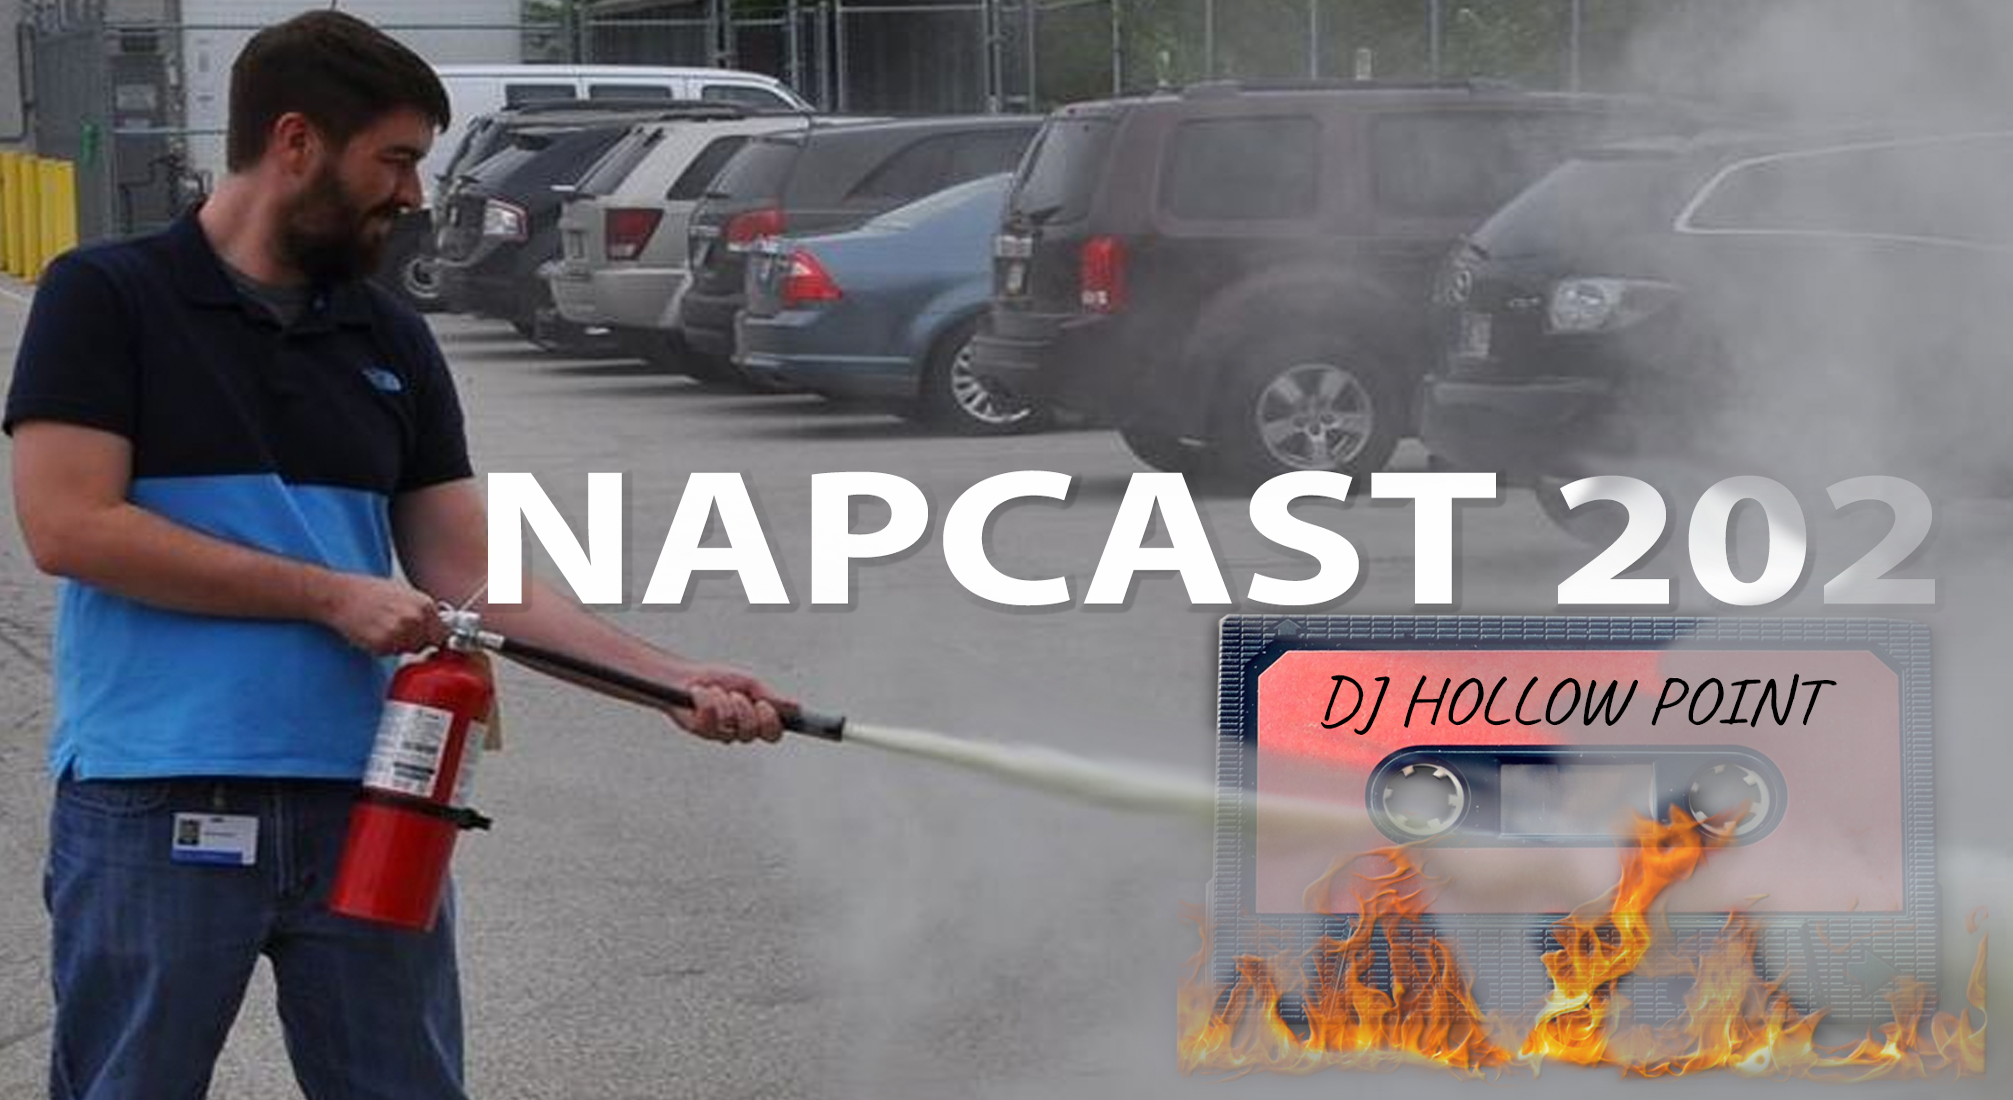 [Mix] NAP DNB presents NAPCast 202 - Hollow Point